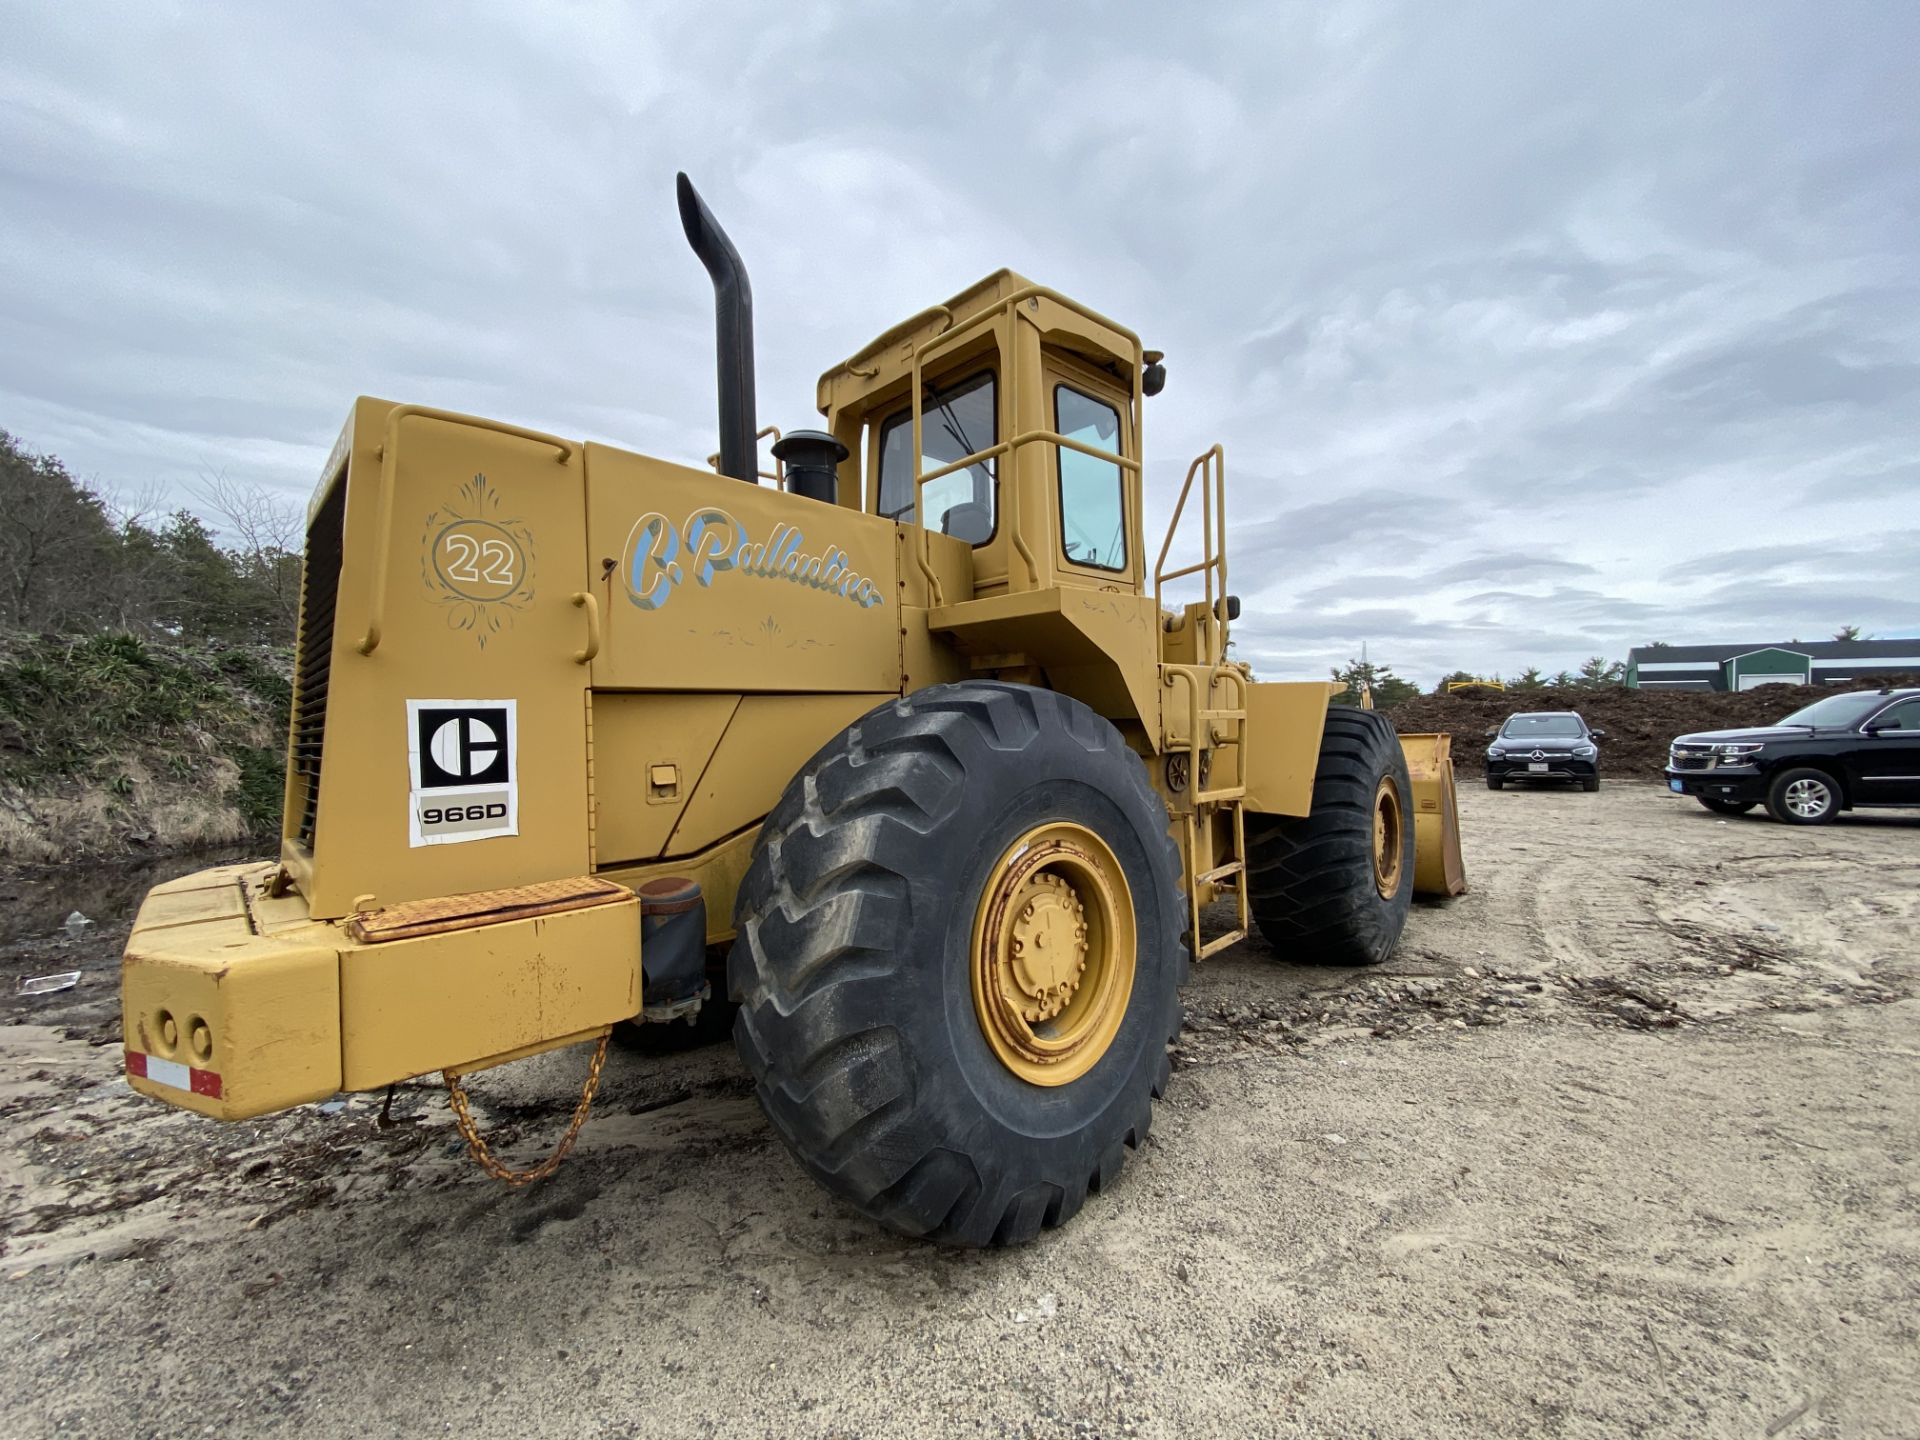 1980 Caterpillar 966D Wheel Loader s/n 99Y02108, Meter Reads 4,664 Hours, Have Title - Image 12 of 23